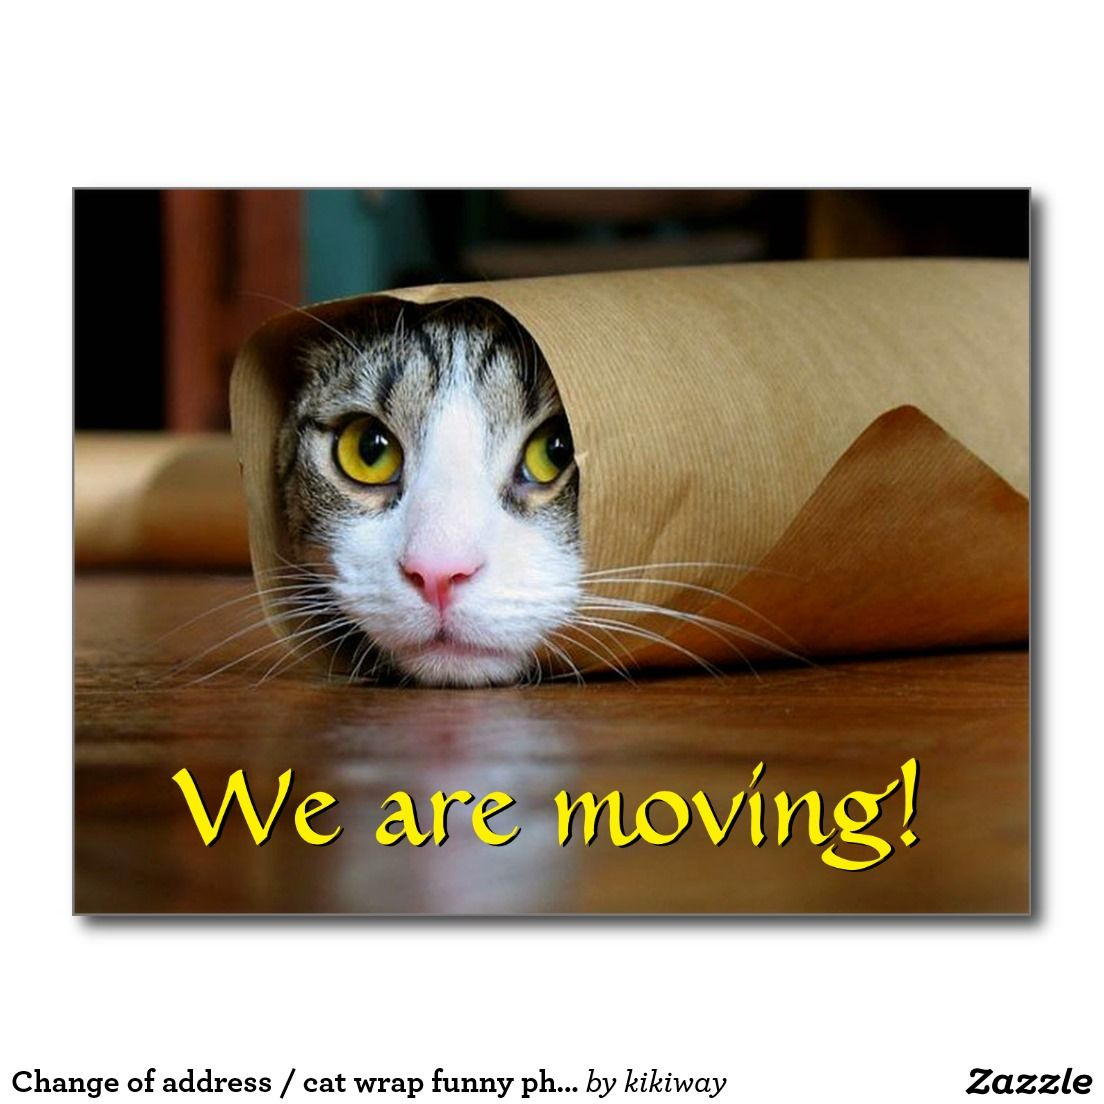 Create Your Own Postcard Zazzle Com In 2020 Funny Cat Wallpaper Funny Cat Videos Funny Cat Compilation